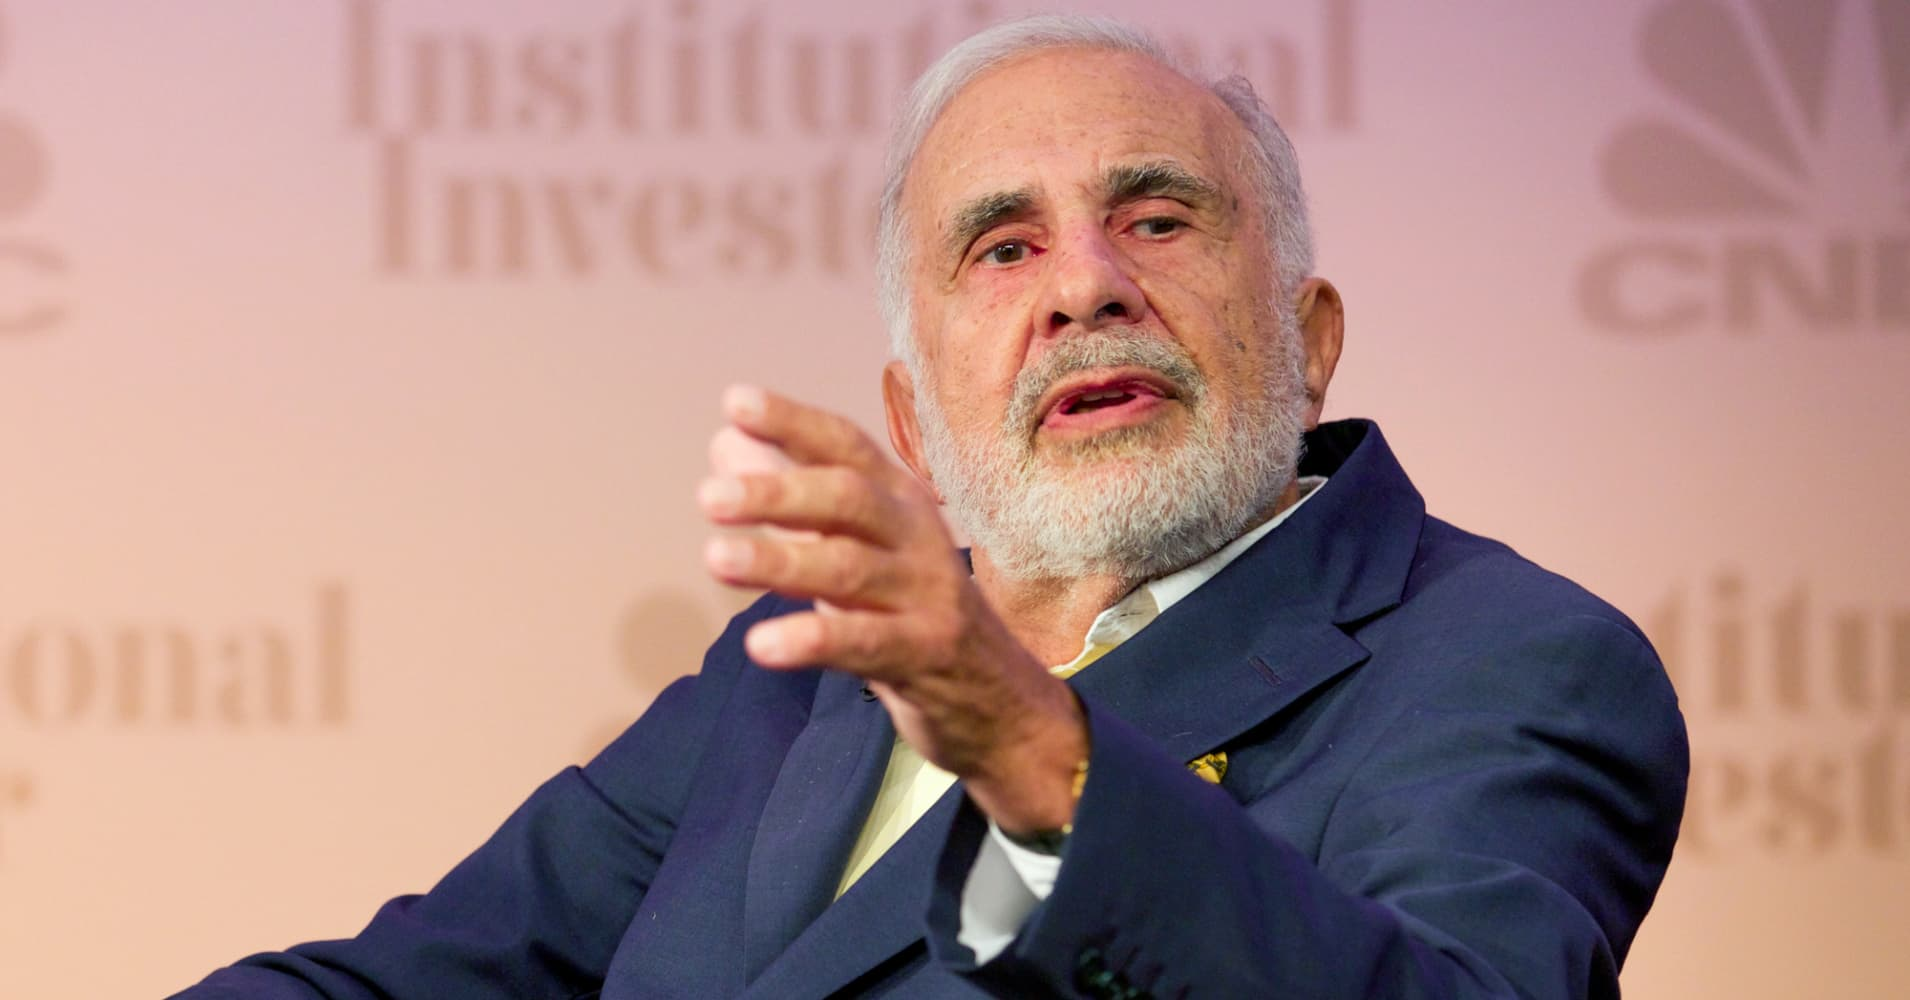 Image result for photos of icahn